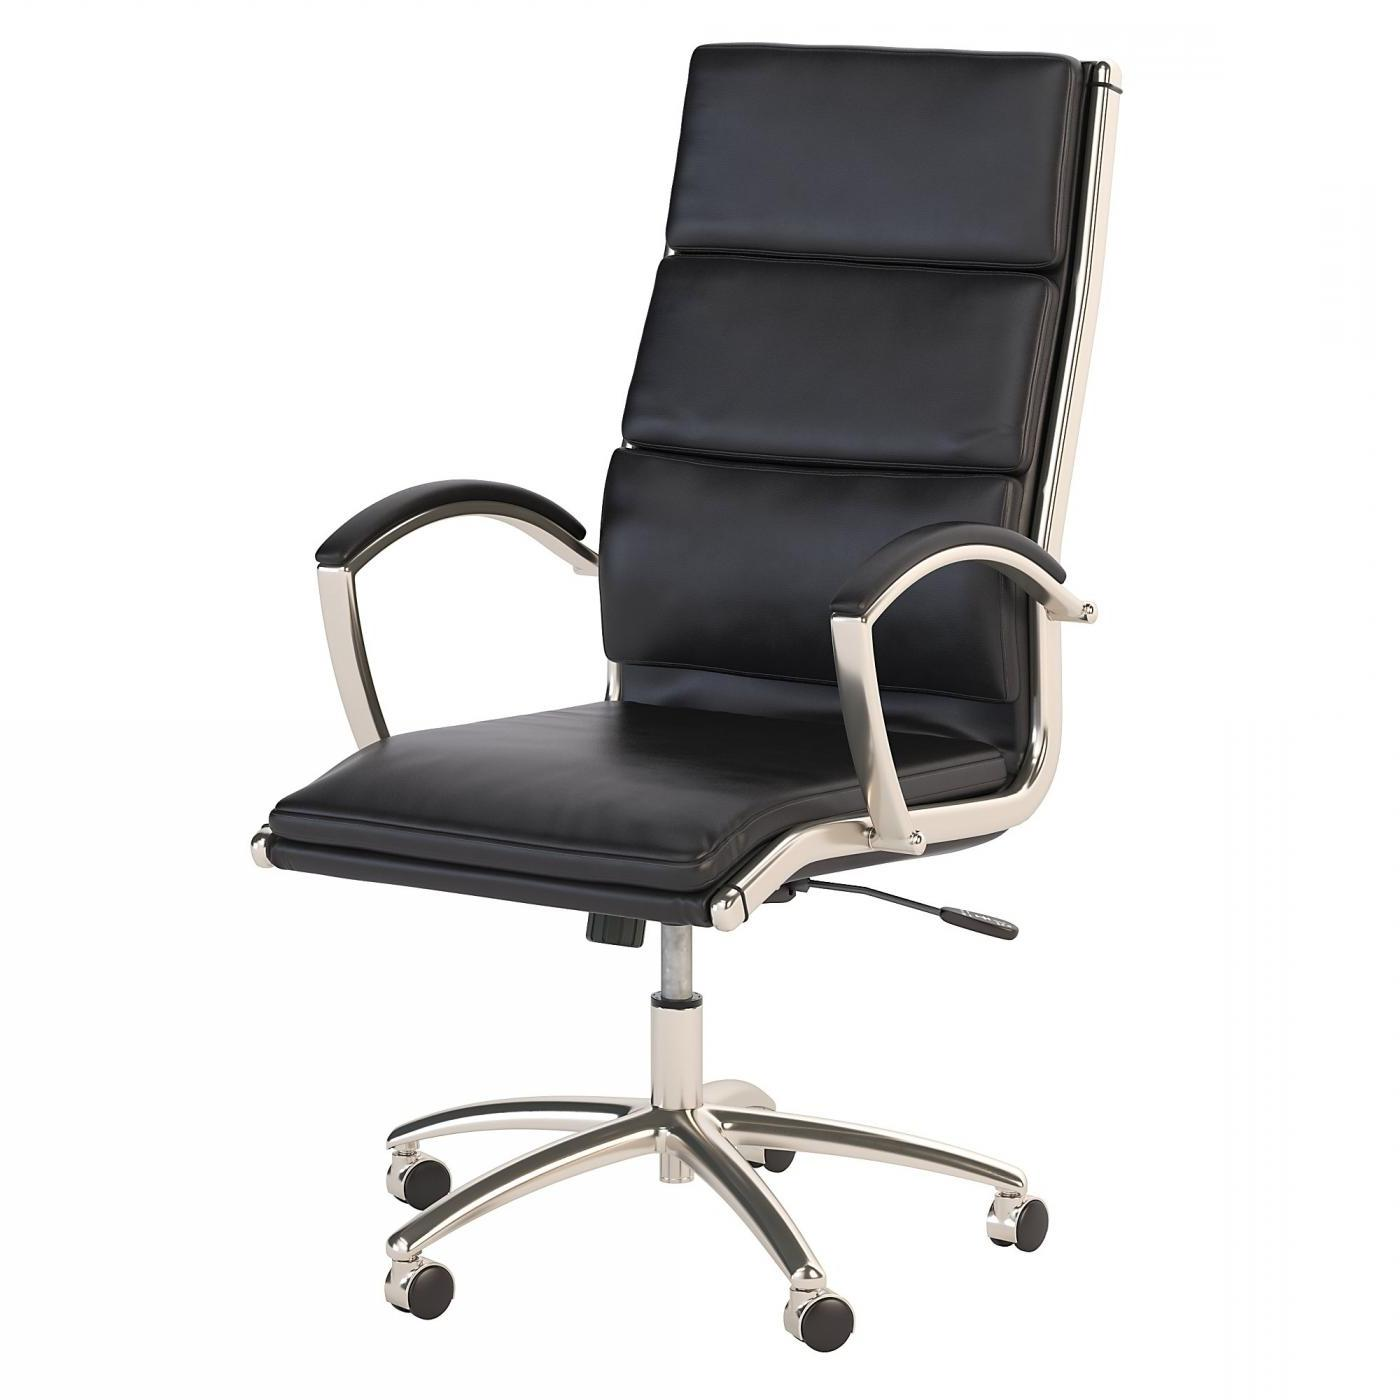 BUSH BUSINESS FURNITURE MODELO HIGH BACK LEATHER EXECUTIVE OFFICE CHAIR #EH-CH1701BLL-03. FREE SHIPPING:  SALE DEDUCT 10% MORE ENTER '10percent' IN COUPON CODE BOX WHILE CHECKING OUT.